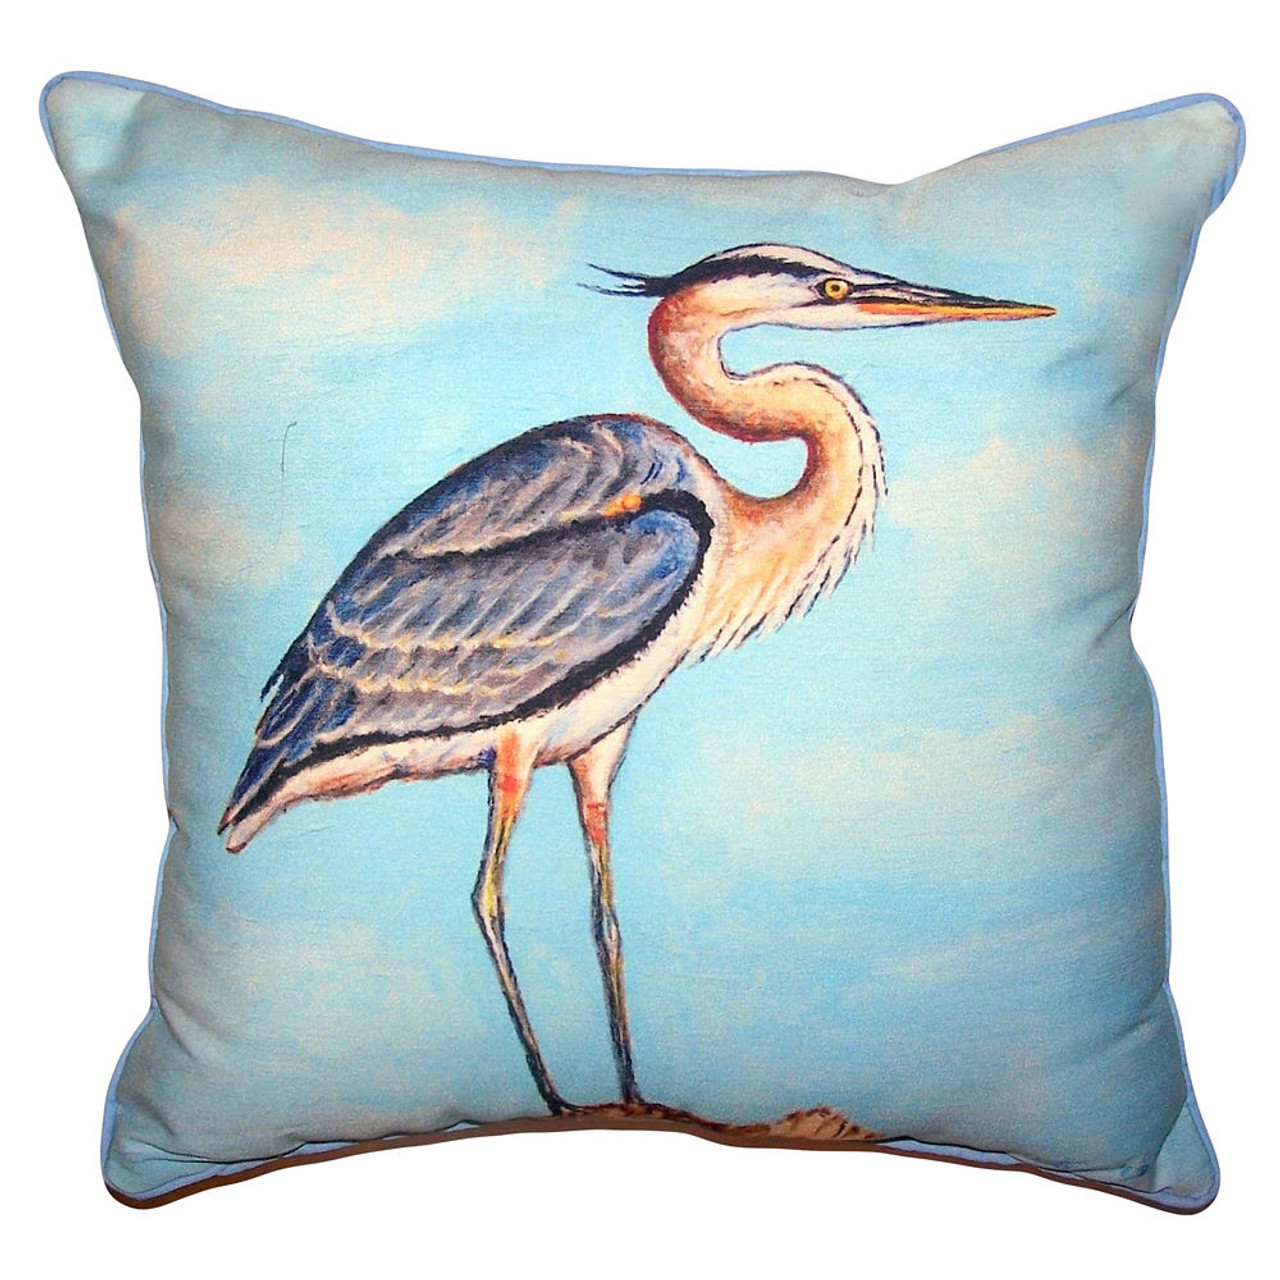 Blue Heron On Stump Pillows